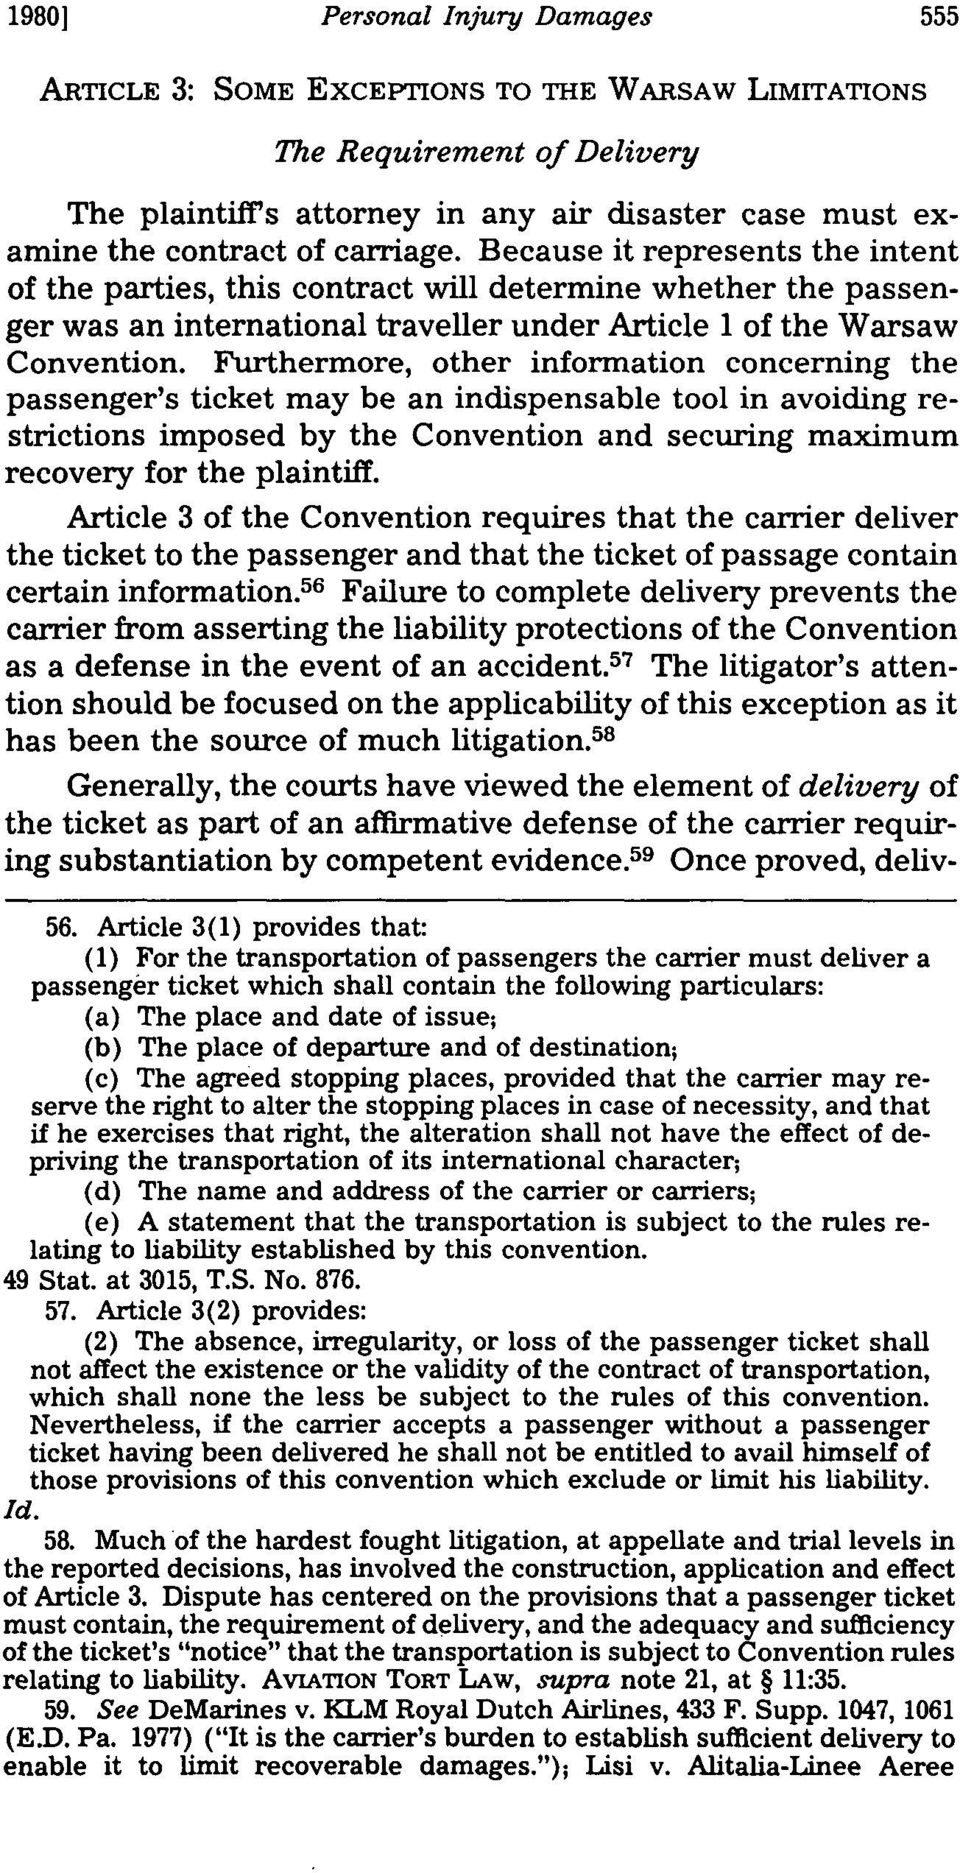 Furthermore, other information concerning the passenger's ticket may be an indispensable tool in avoiding restrictions imposed by the Convention and securing maximum recovery for the plaintiff.